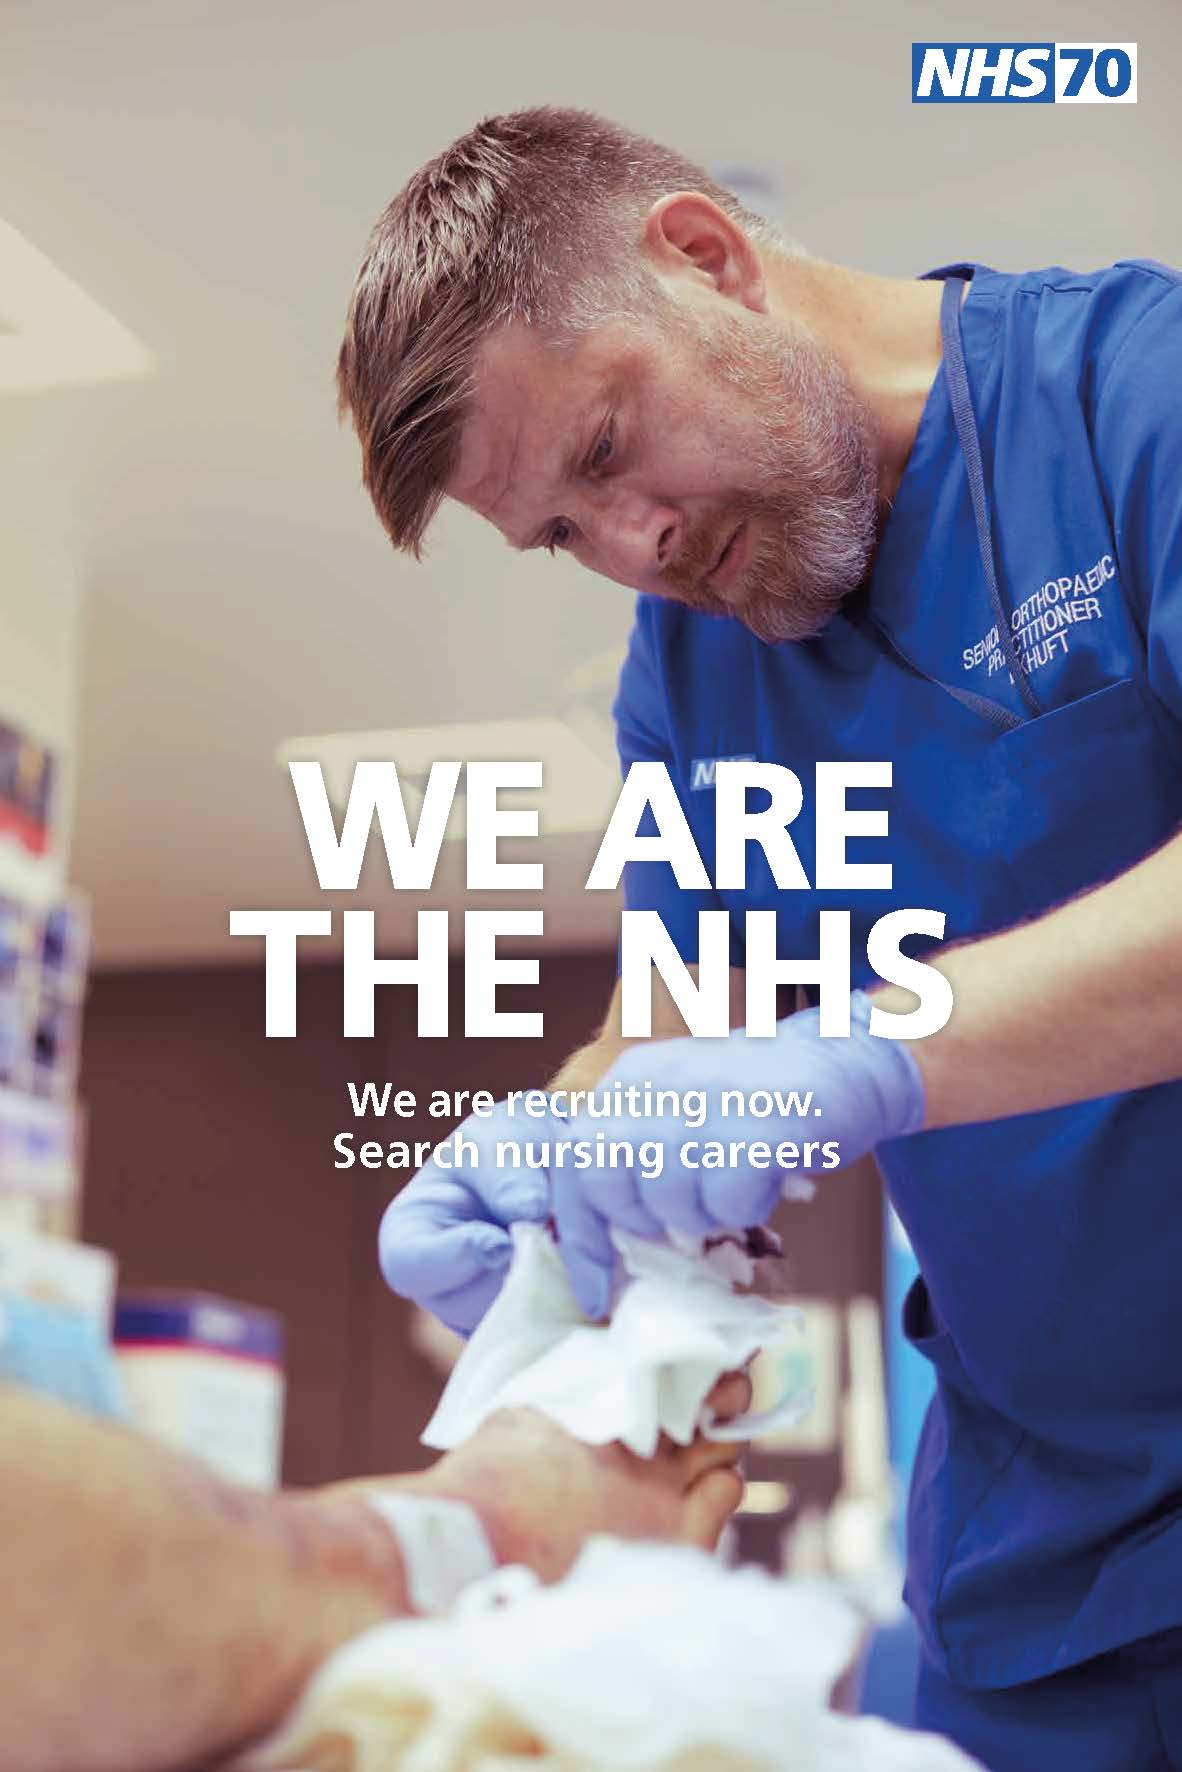 Bespoke lock up campaign example - NHS70